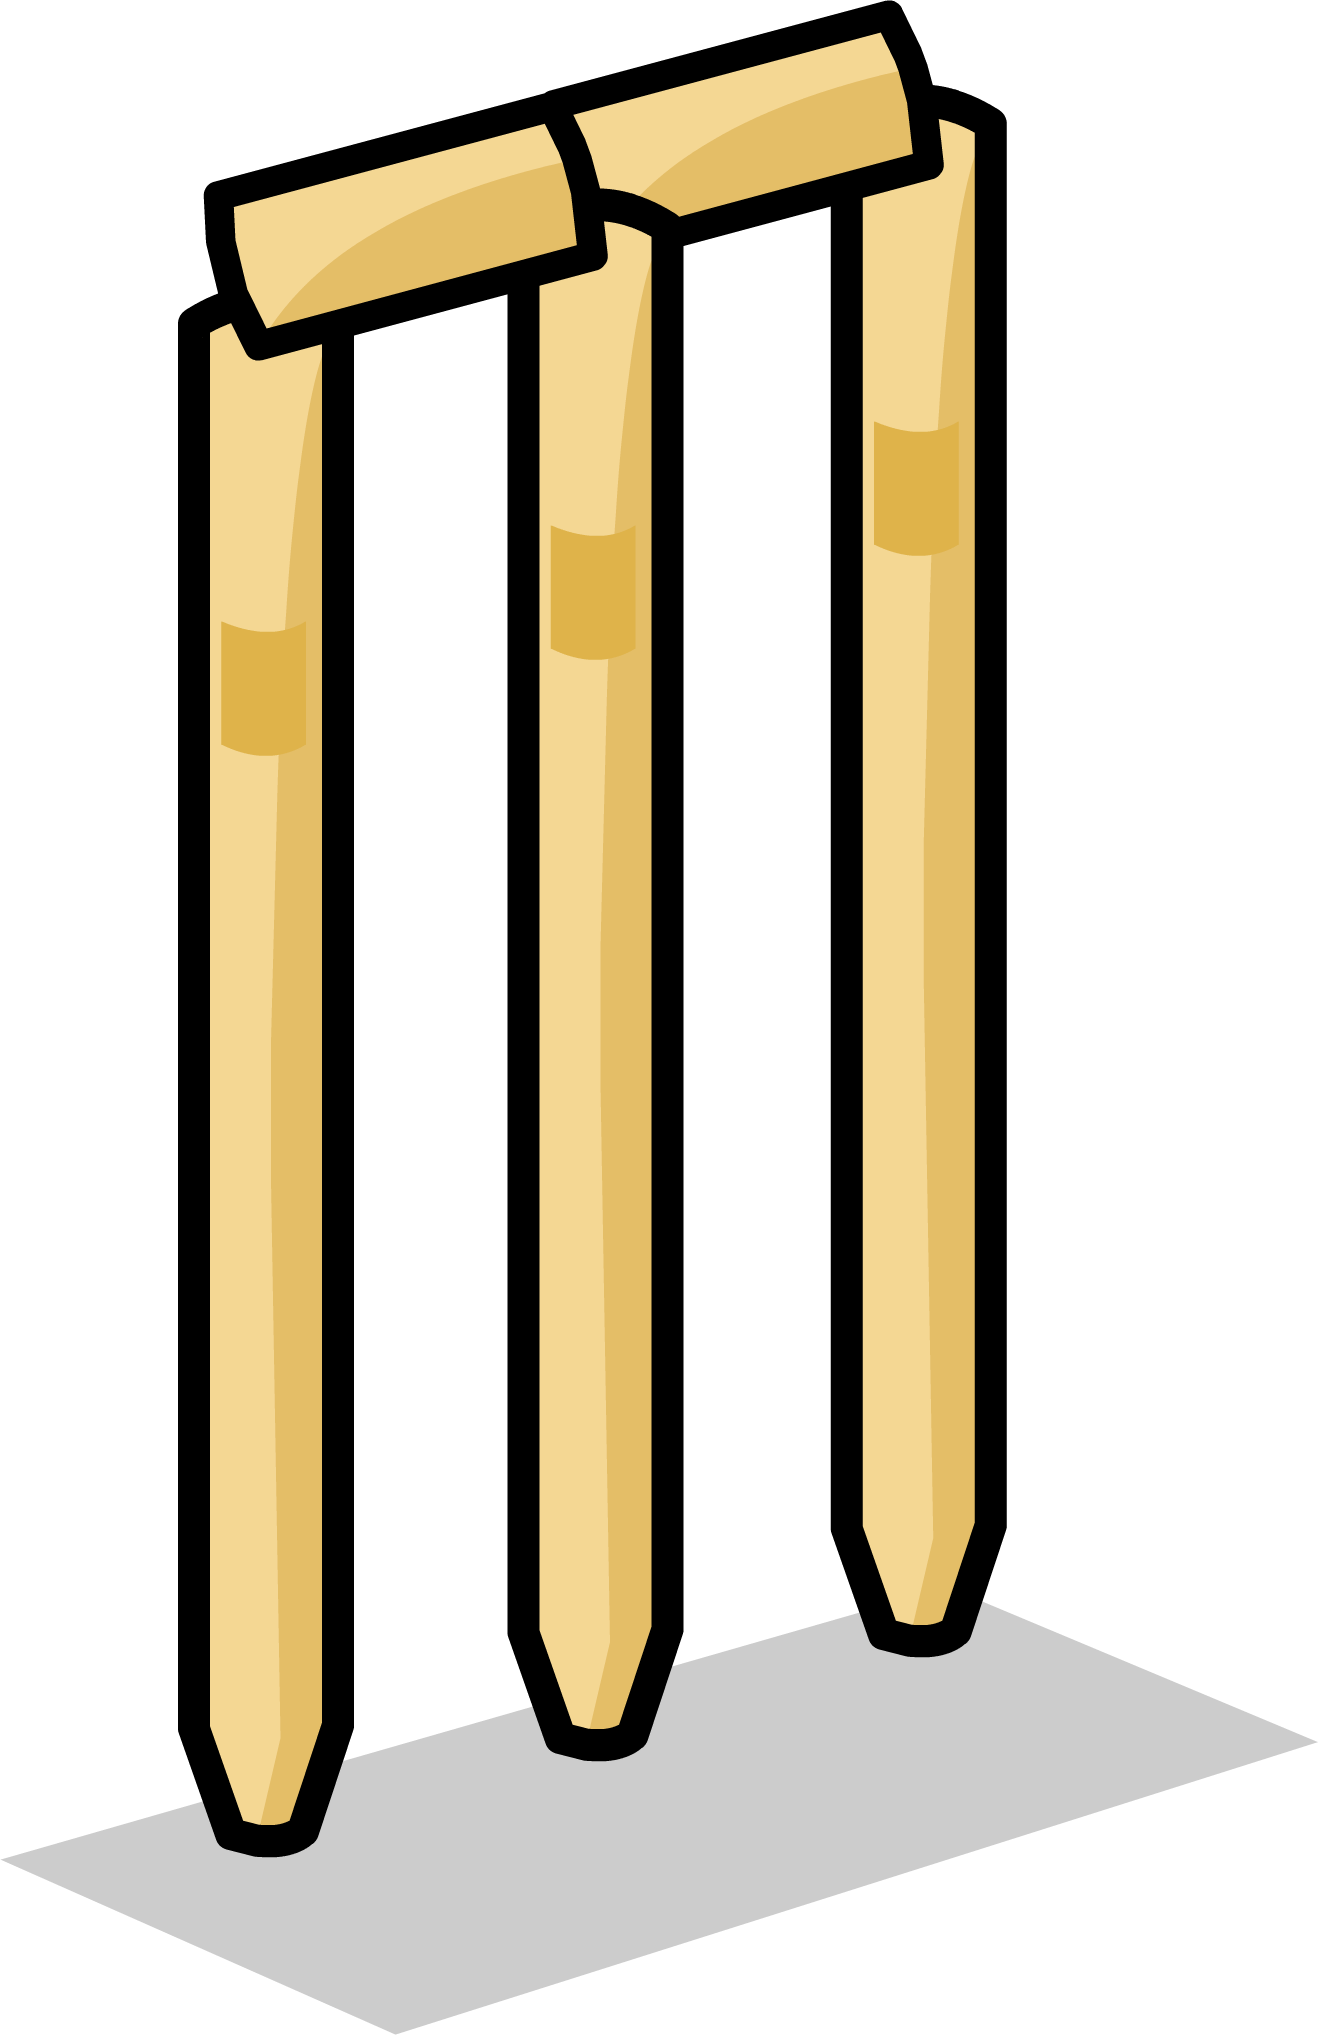 Wickets png